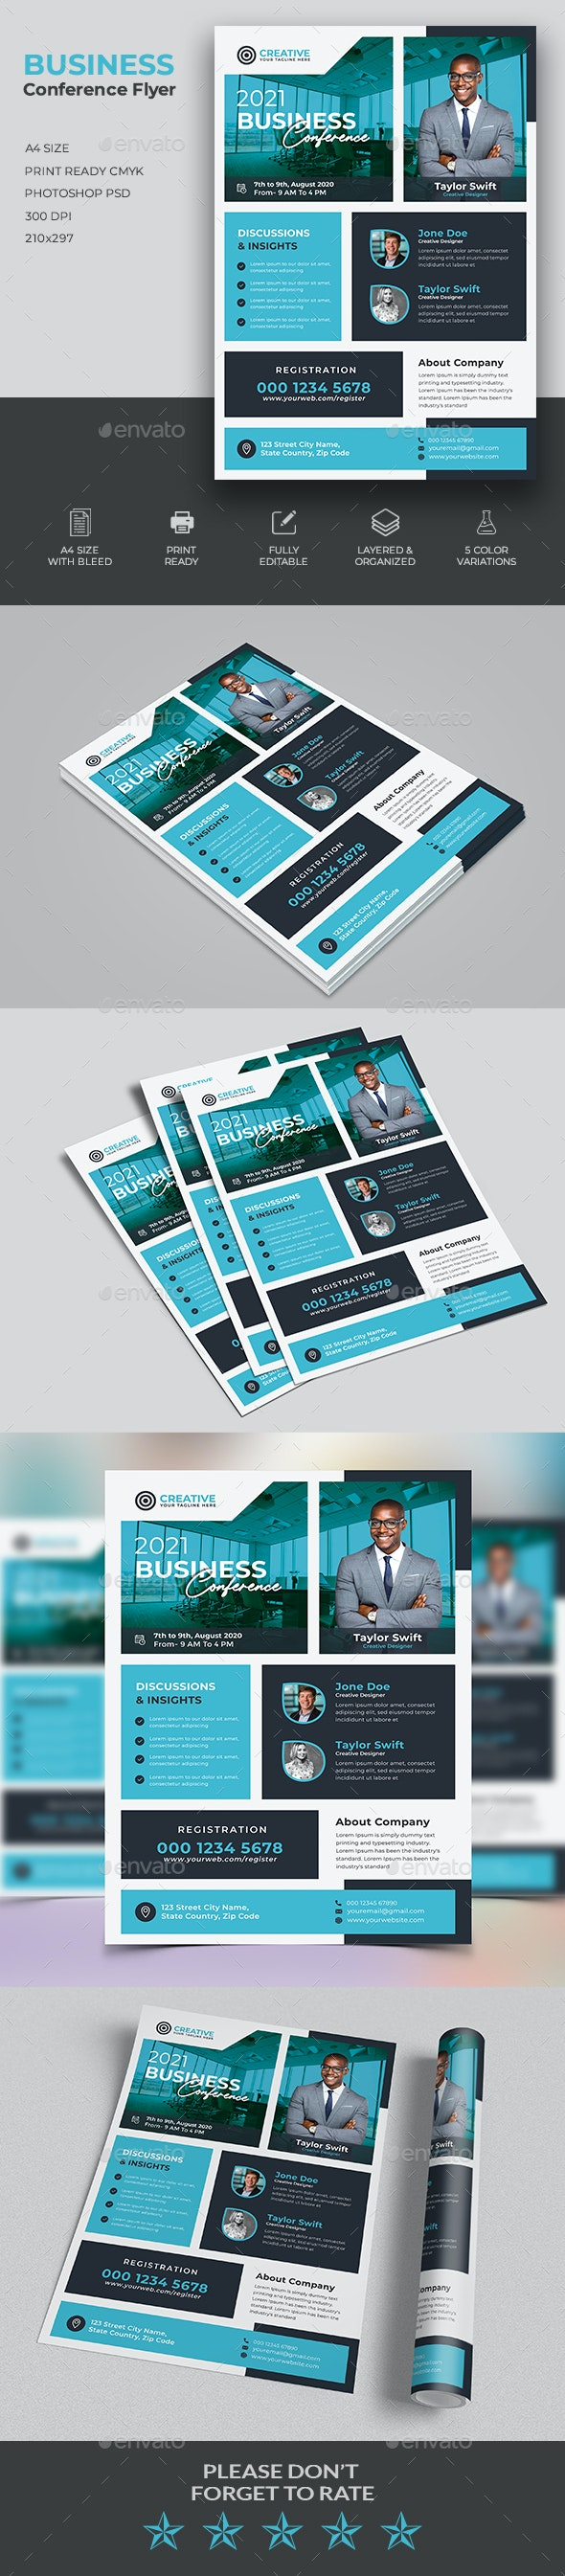 Business Conference Flyer - Corporate Brochures